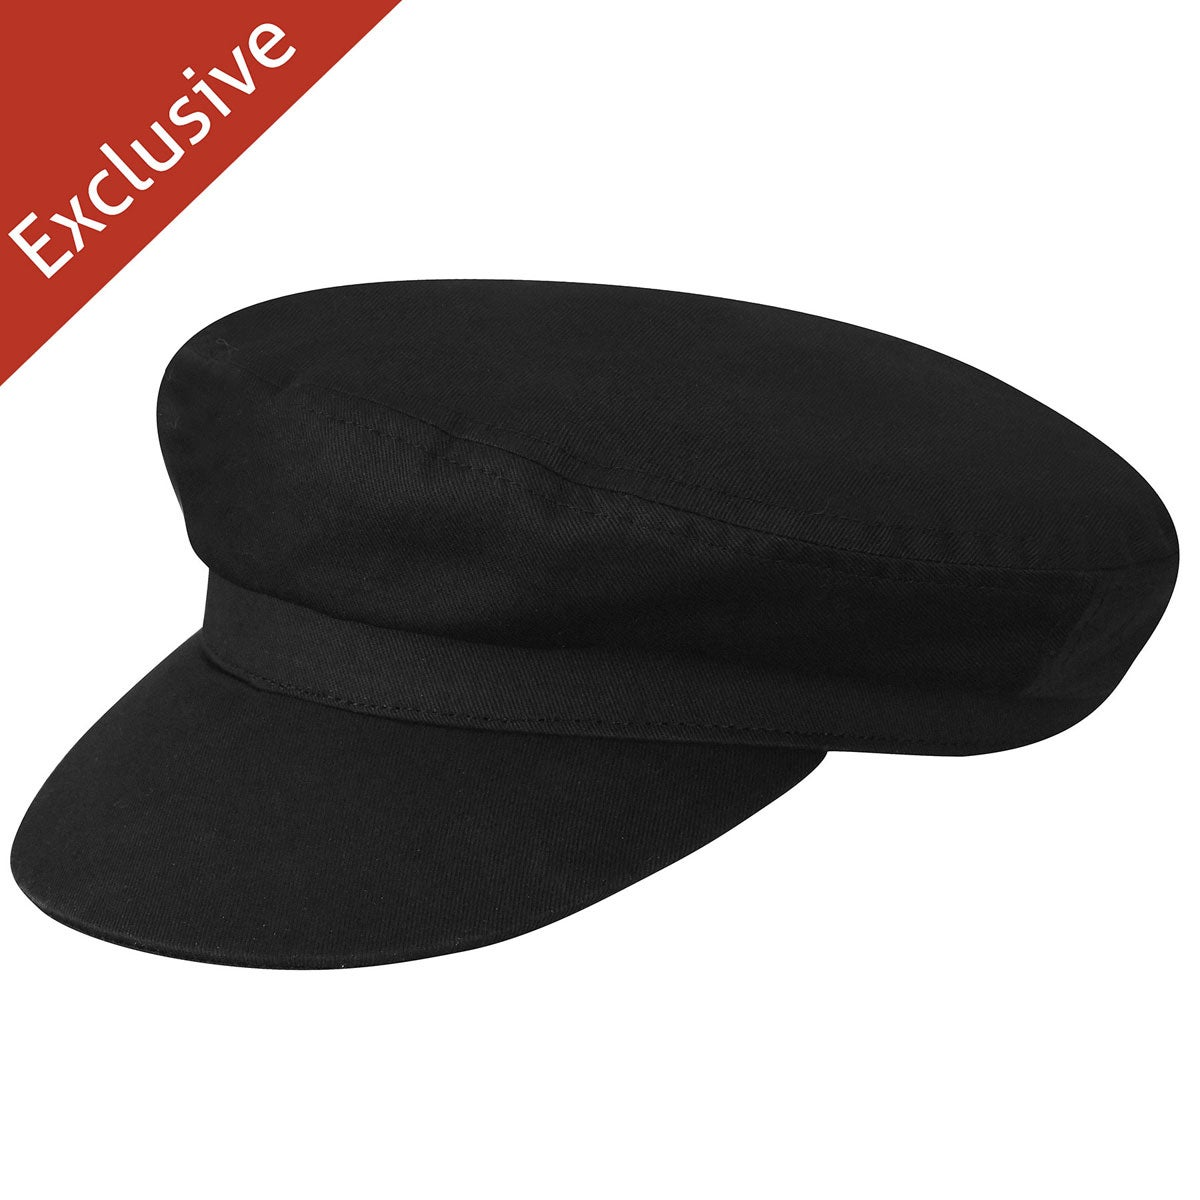 1960s – 70s Style Men's Hats Triton Cotton Fiddler Cap $18.00 AT vintagedancer.com